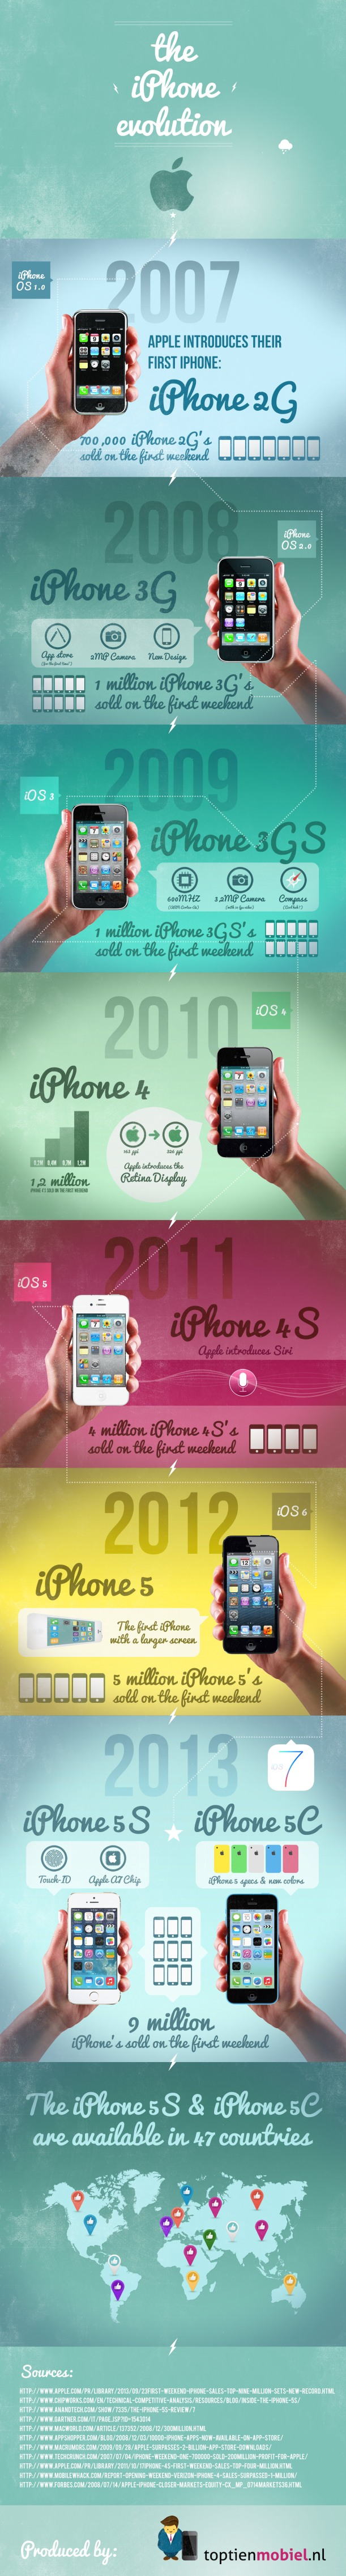 Evolucion del iPhone al iPhone 5s